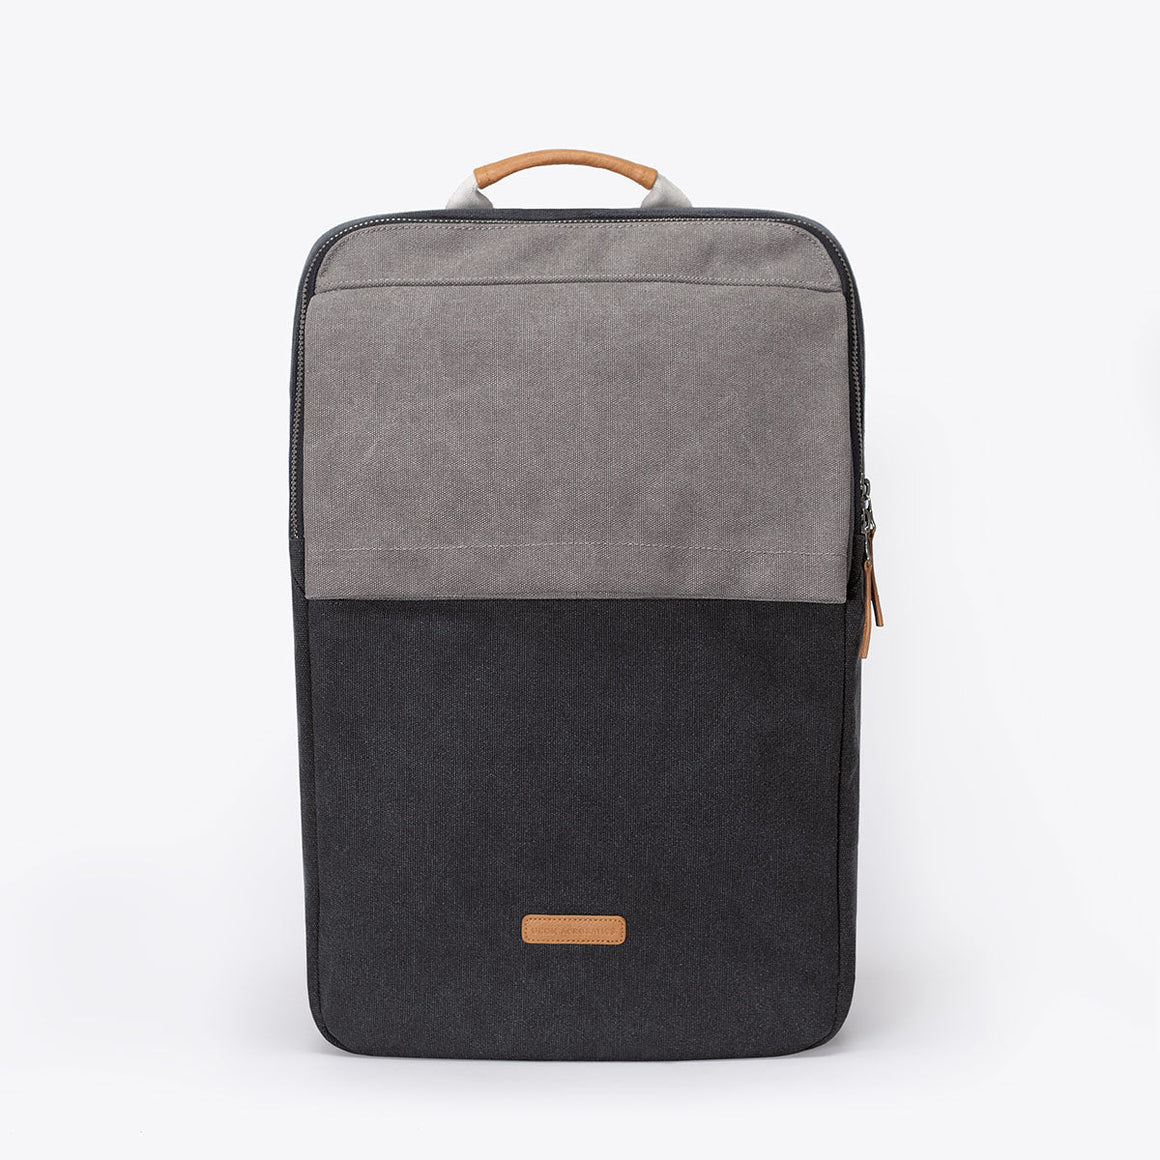 Ucon Acrobatics • Nathan Backpack • Original Series (Black)